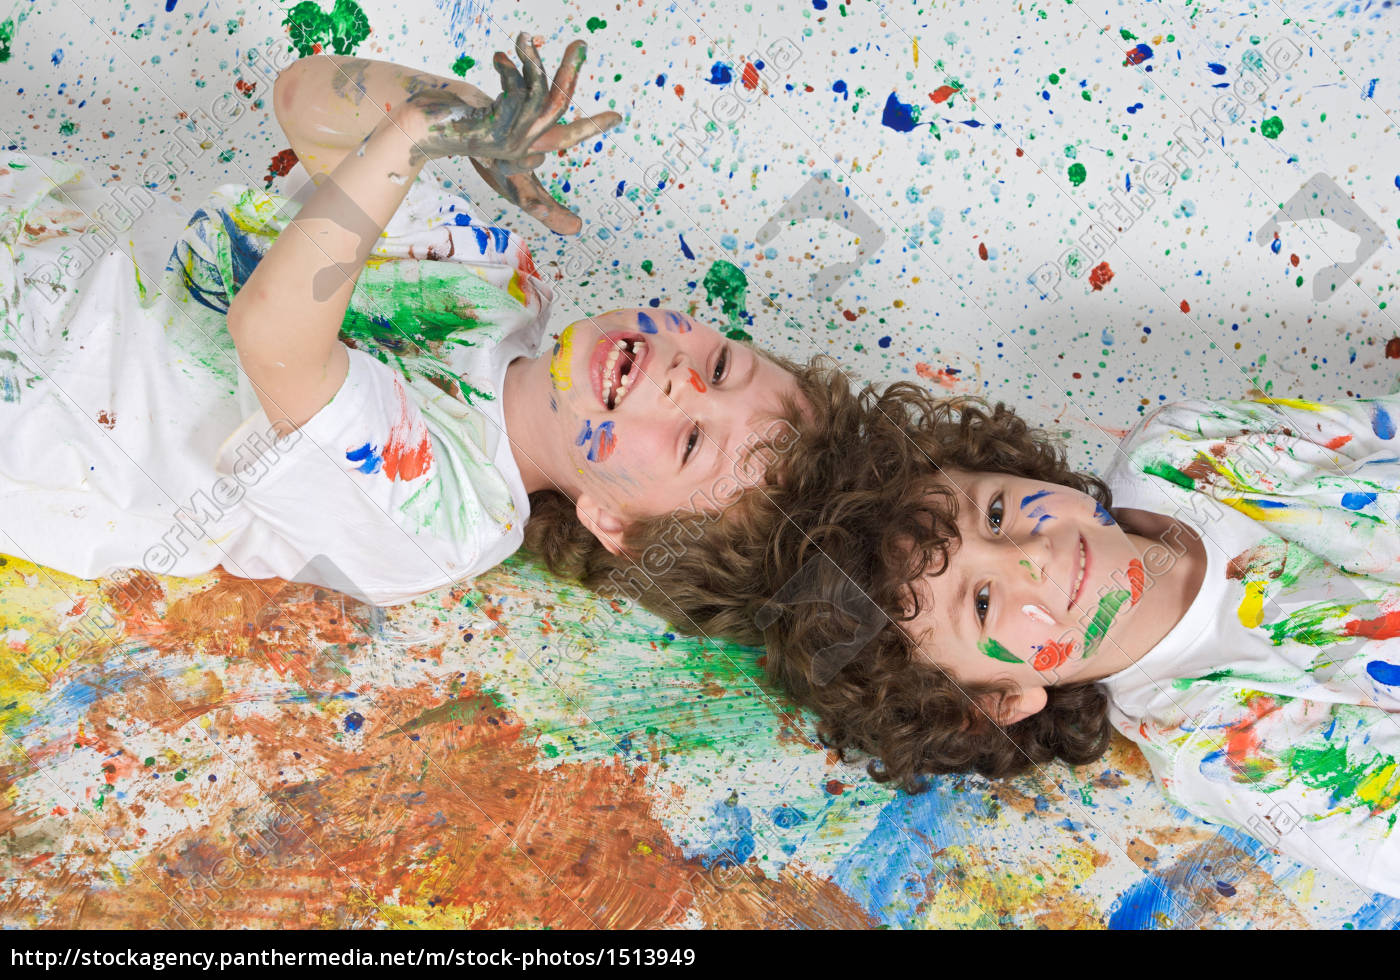 children, playing, with, painting - 1513949